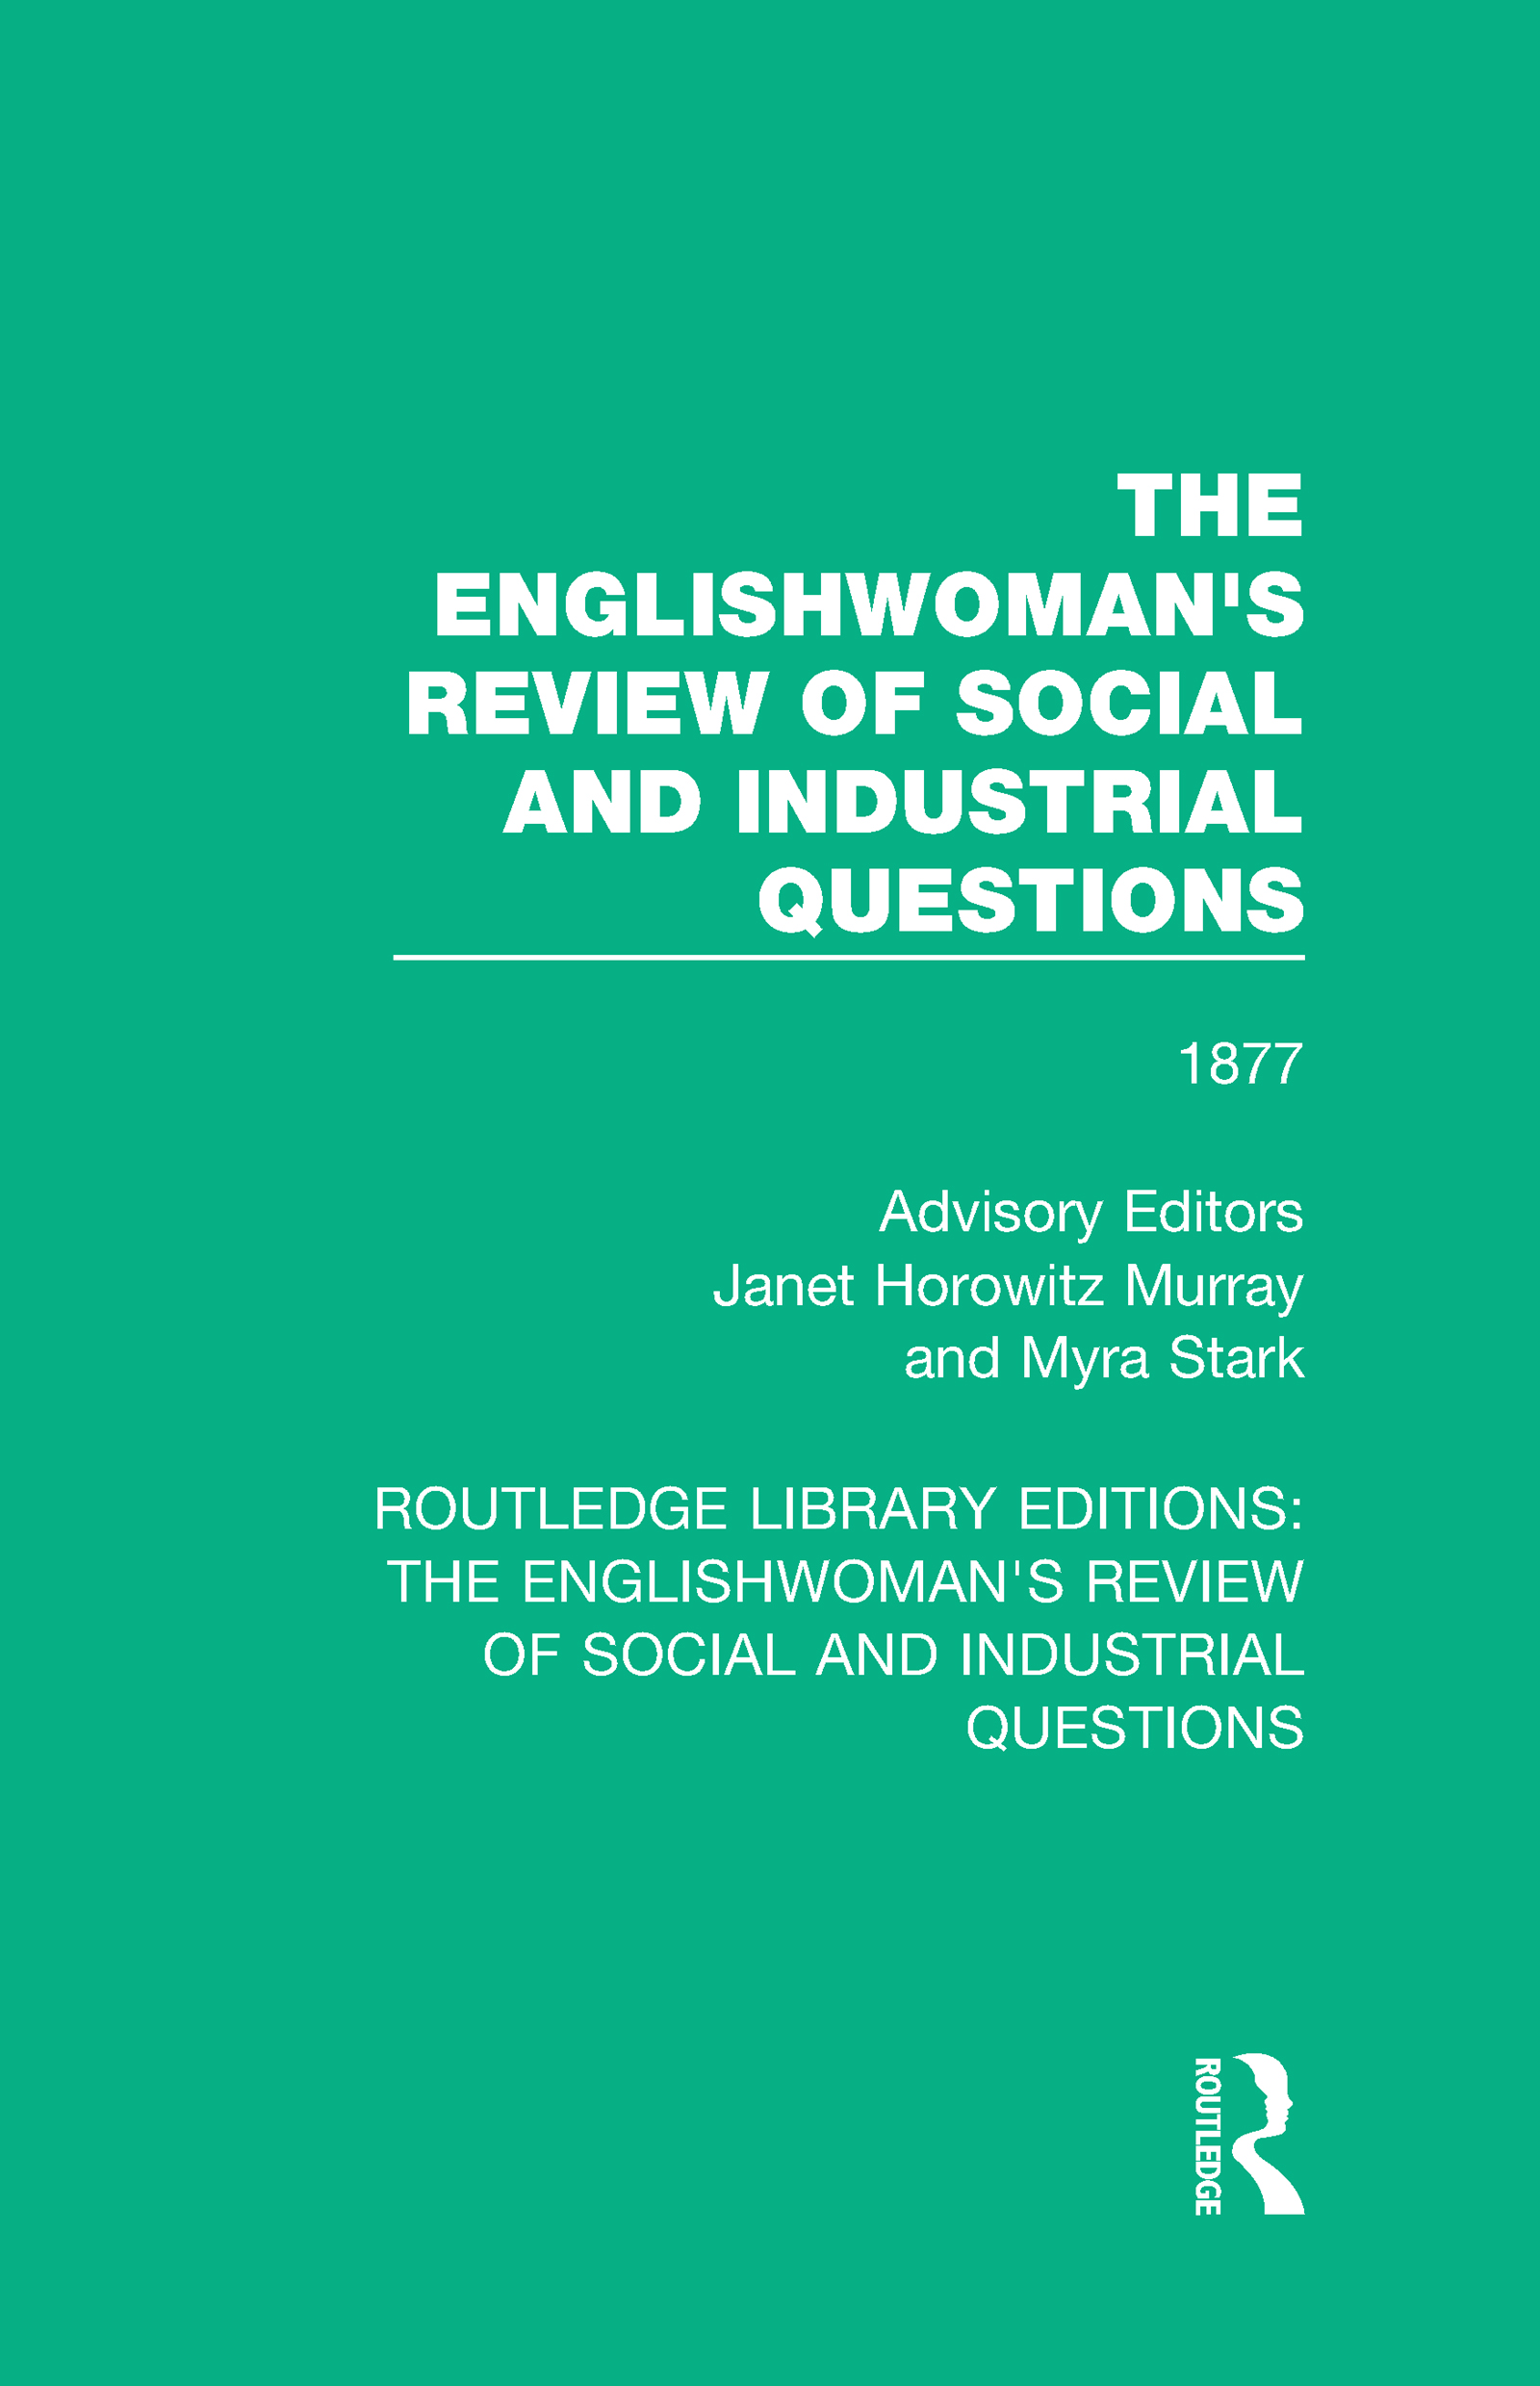 The Englishwoman's Review of Social and Industrial Questions: 1877 book cover